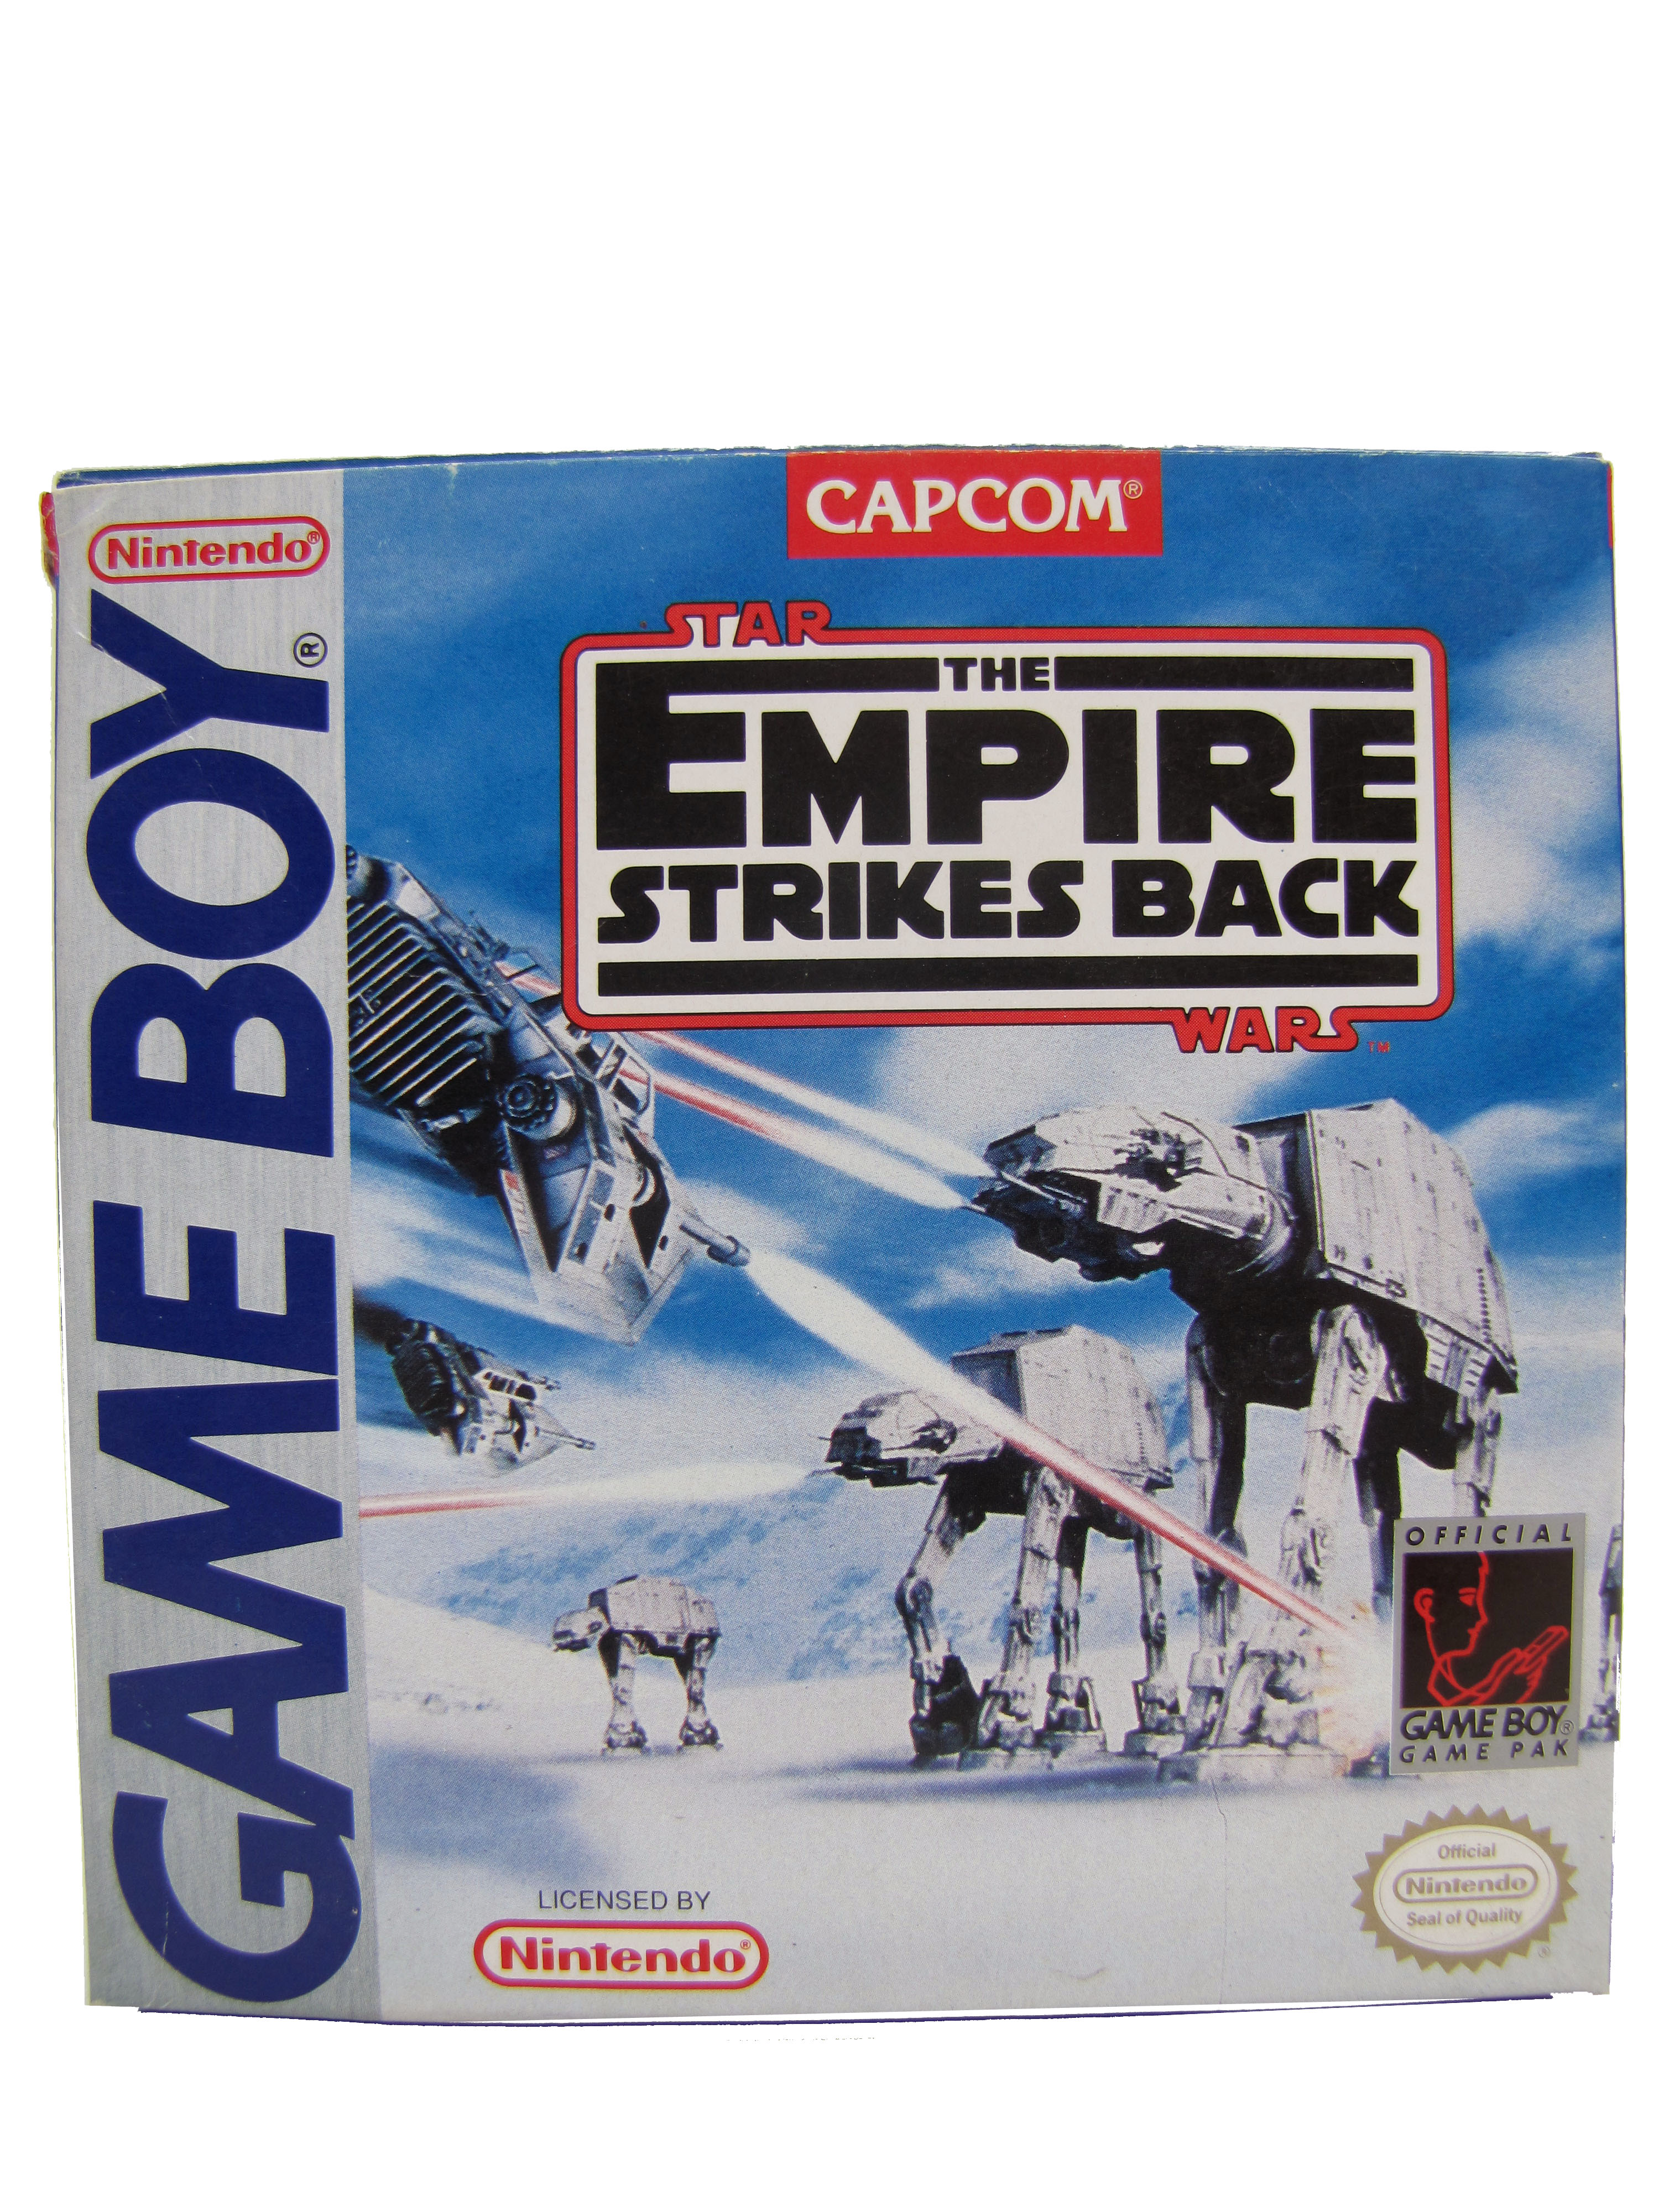 Game Boy The Empire Strikes Back Complete in Box - 1992